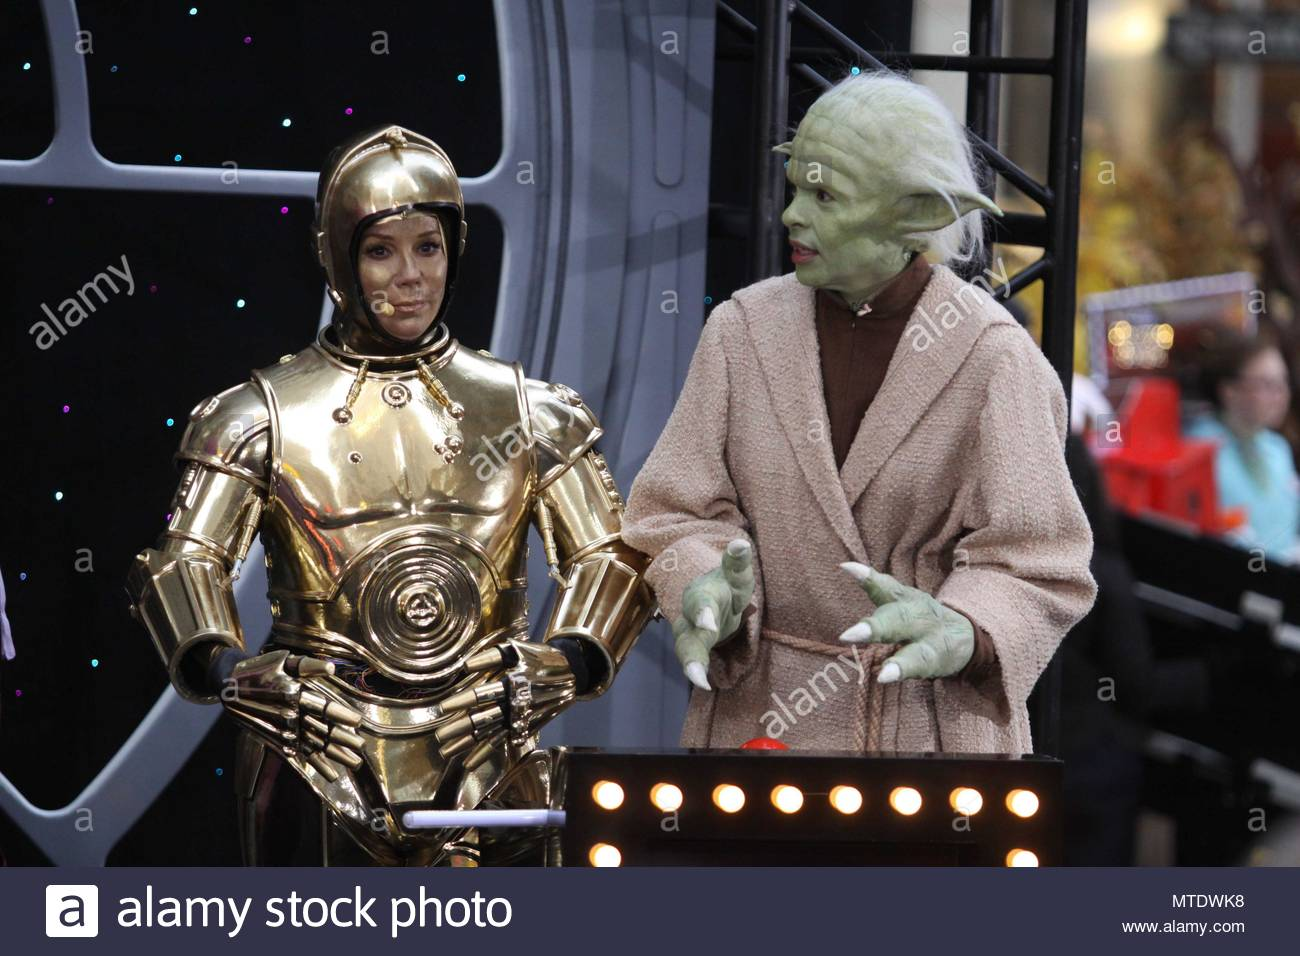 Kathie Lee Gifford As C 3PO And Hoda Kotb Yoda Star Wars Was The Halloween Theme For This Years Costumes On Today Show Filmed In Rockefeller